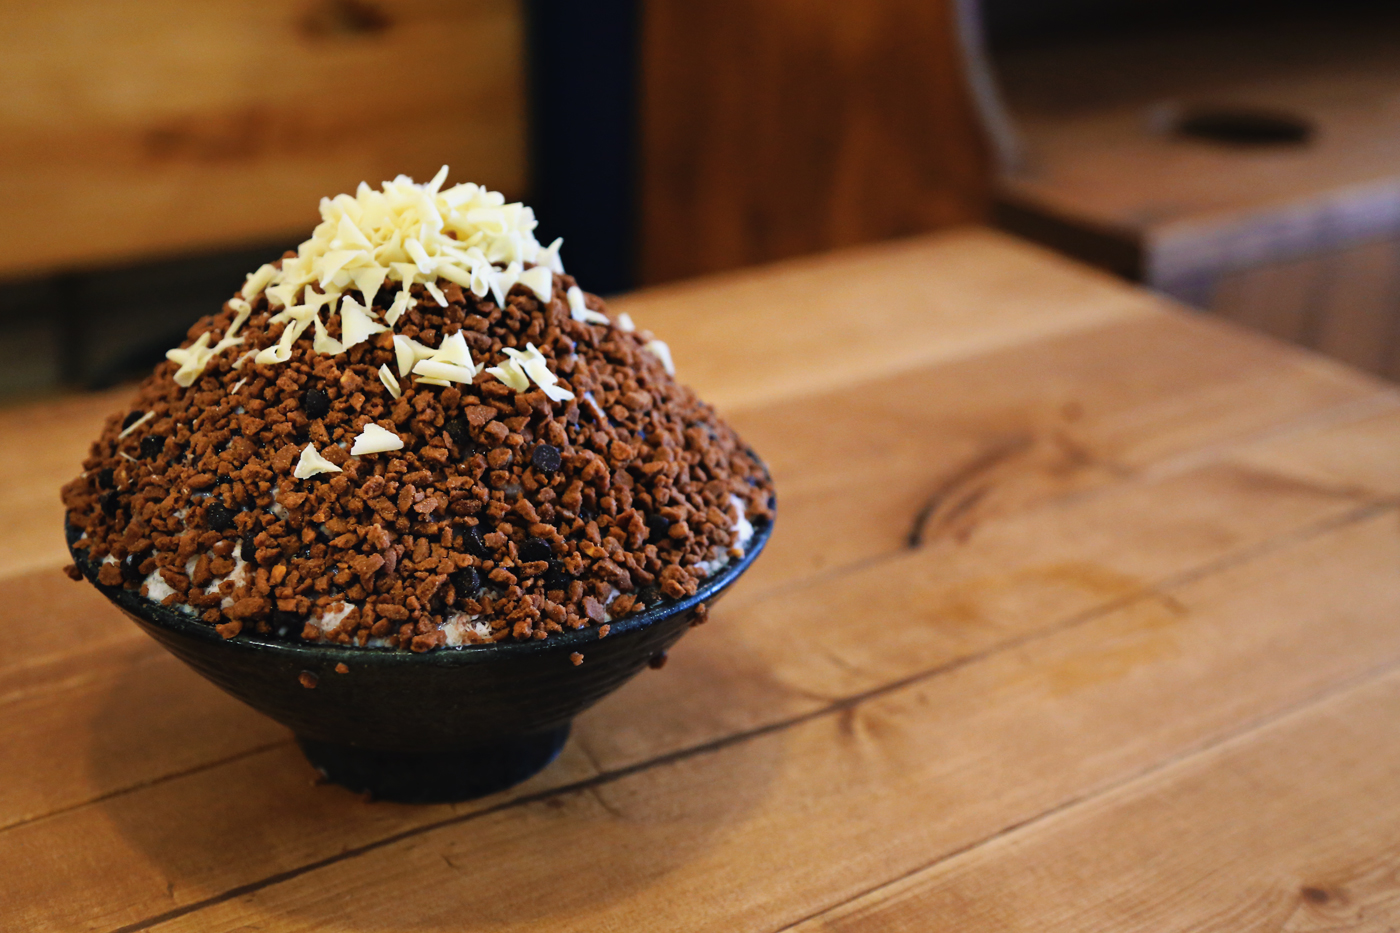 Patmiok's (팥미옥) chocolate snowflake bingsu (초코 눈꽃빙수), one of the great bingsu cafe in Seoul.